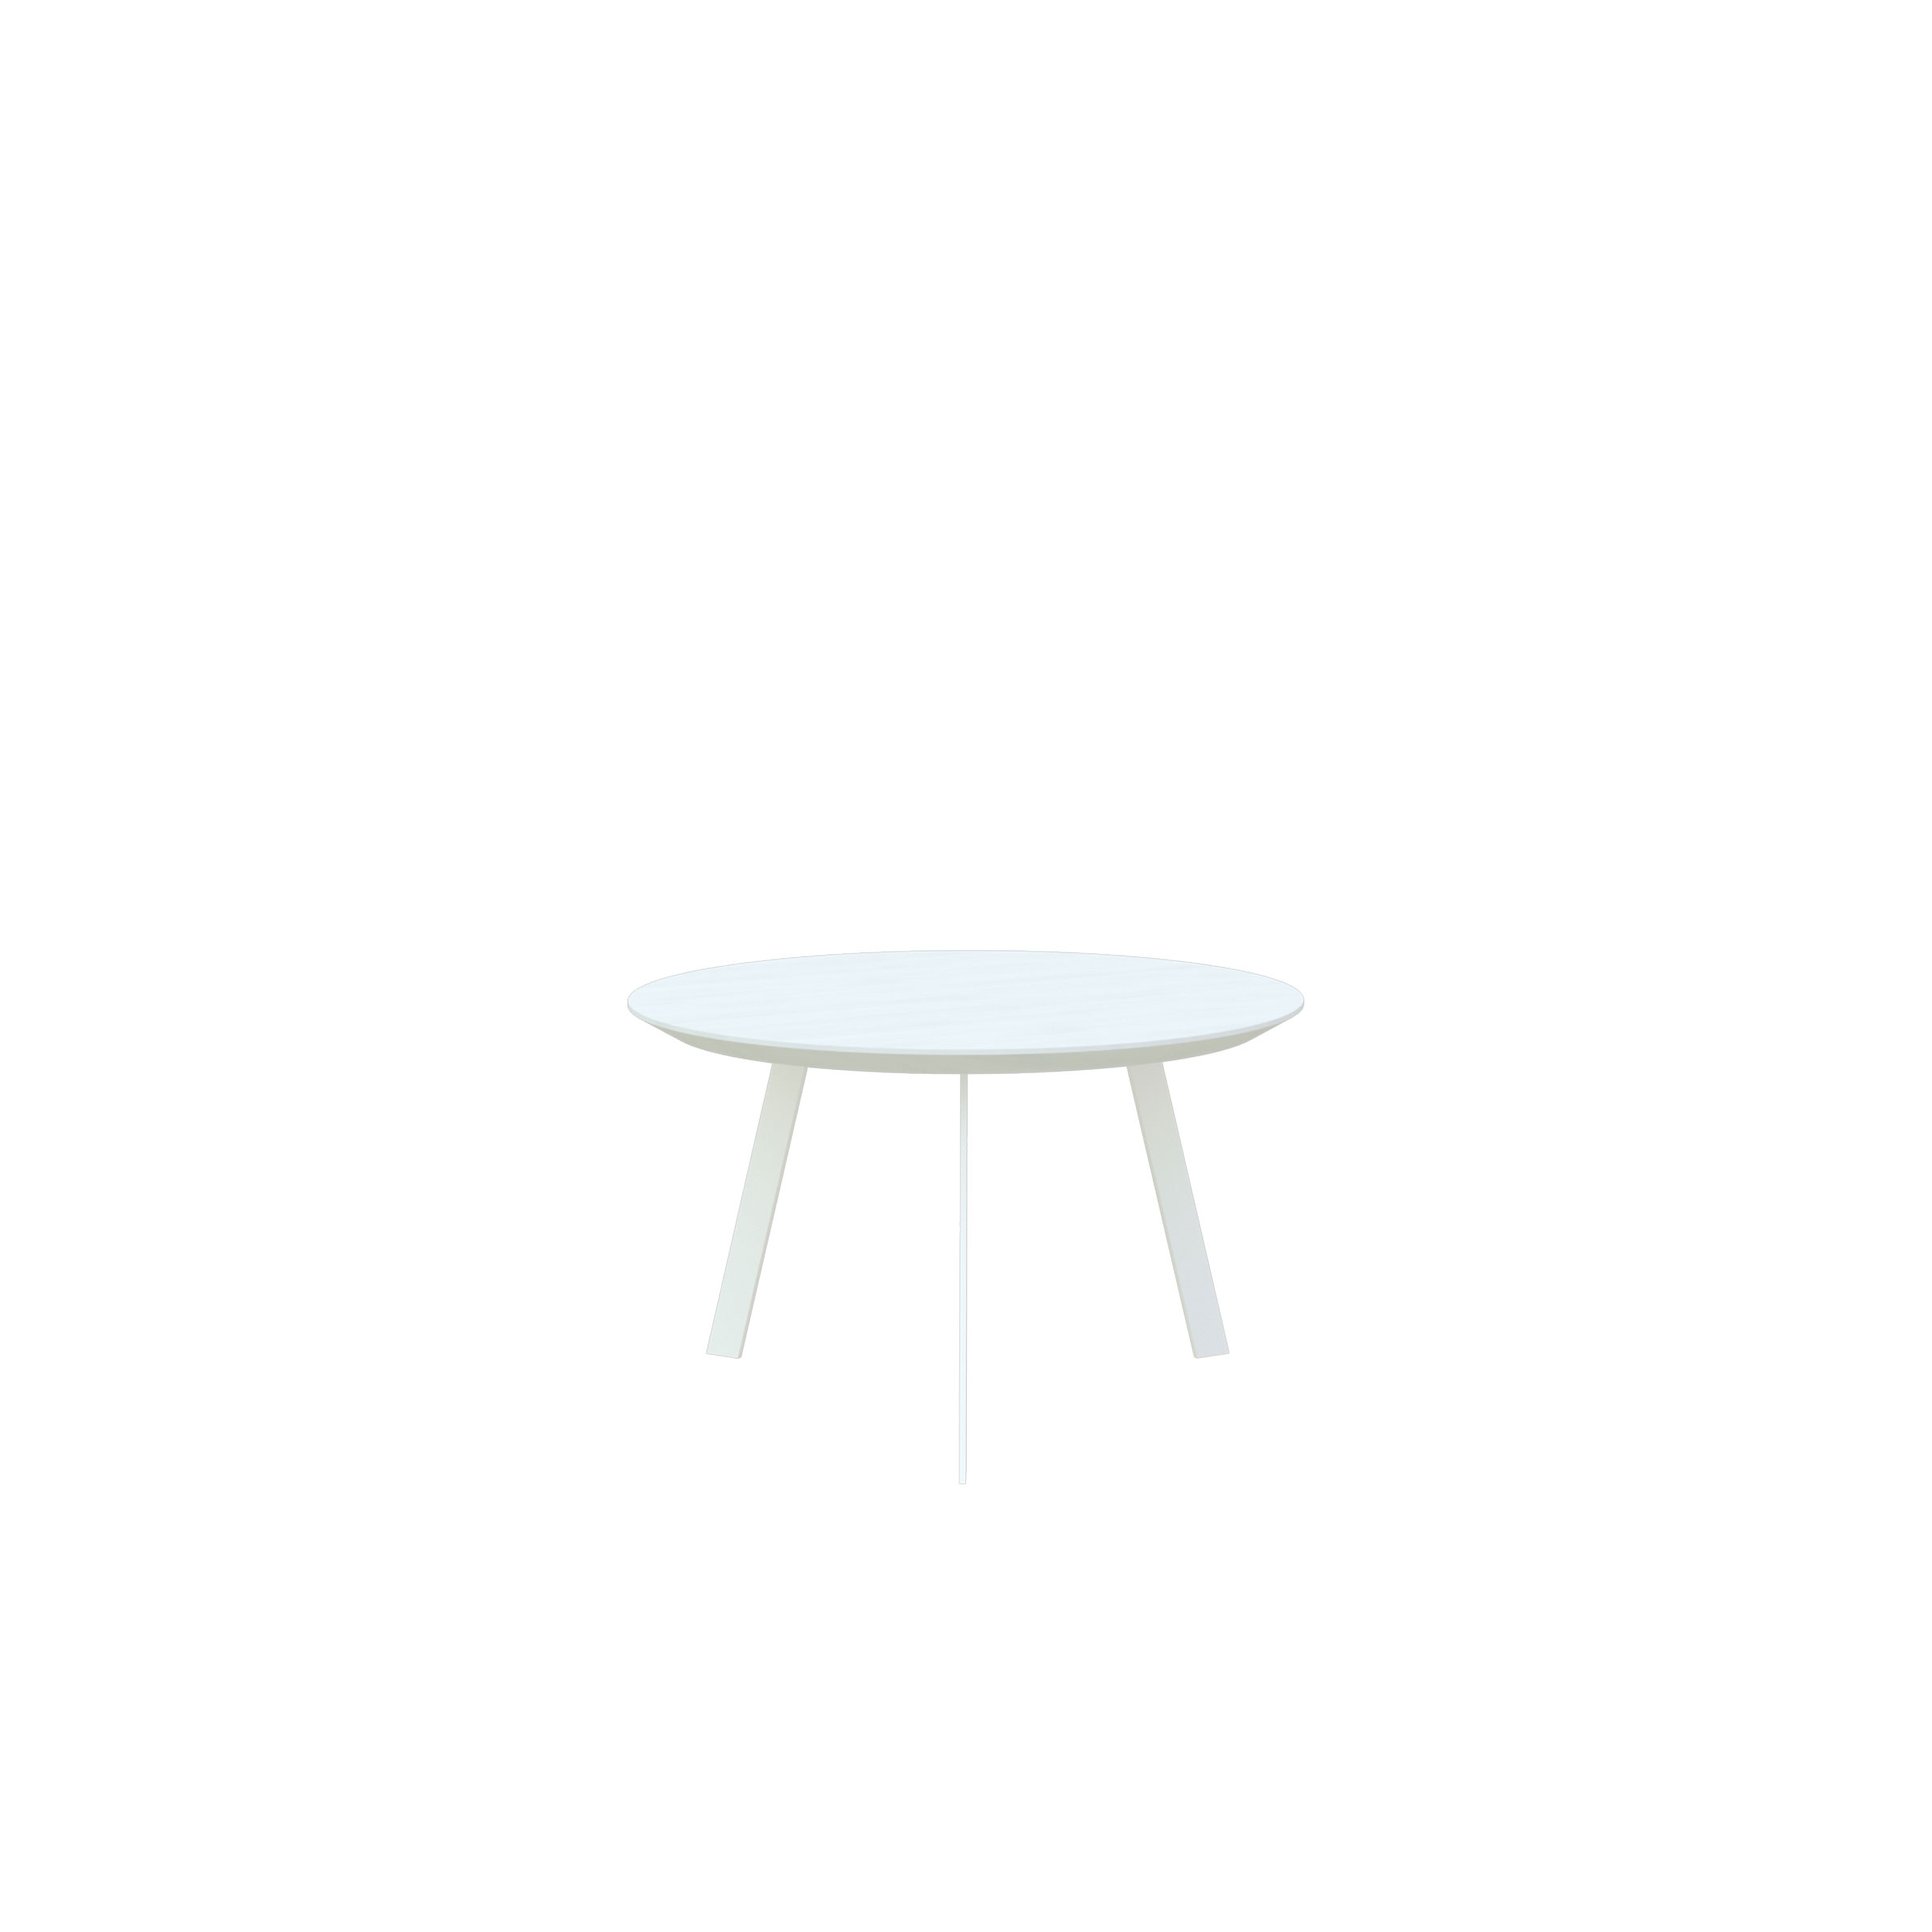 New Co Coffee Table 70 Round